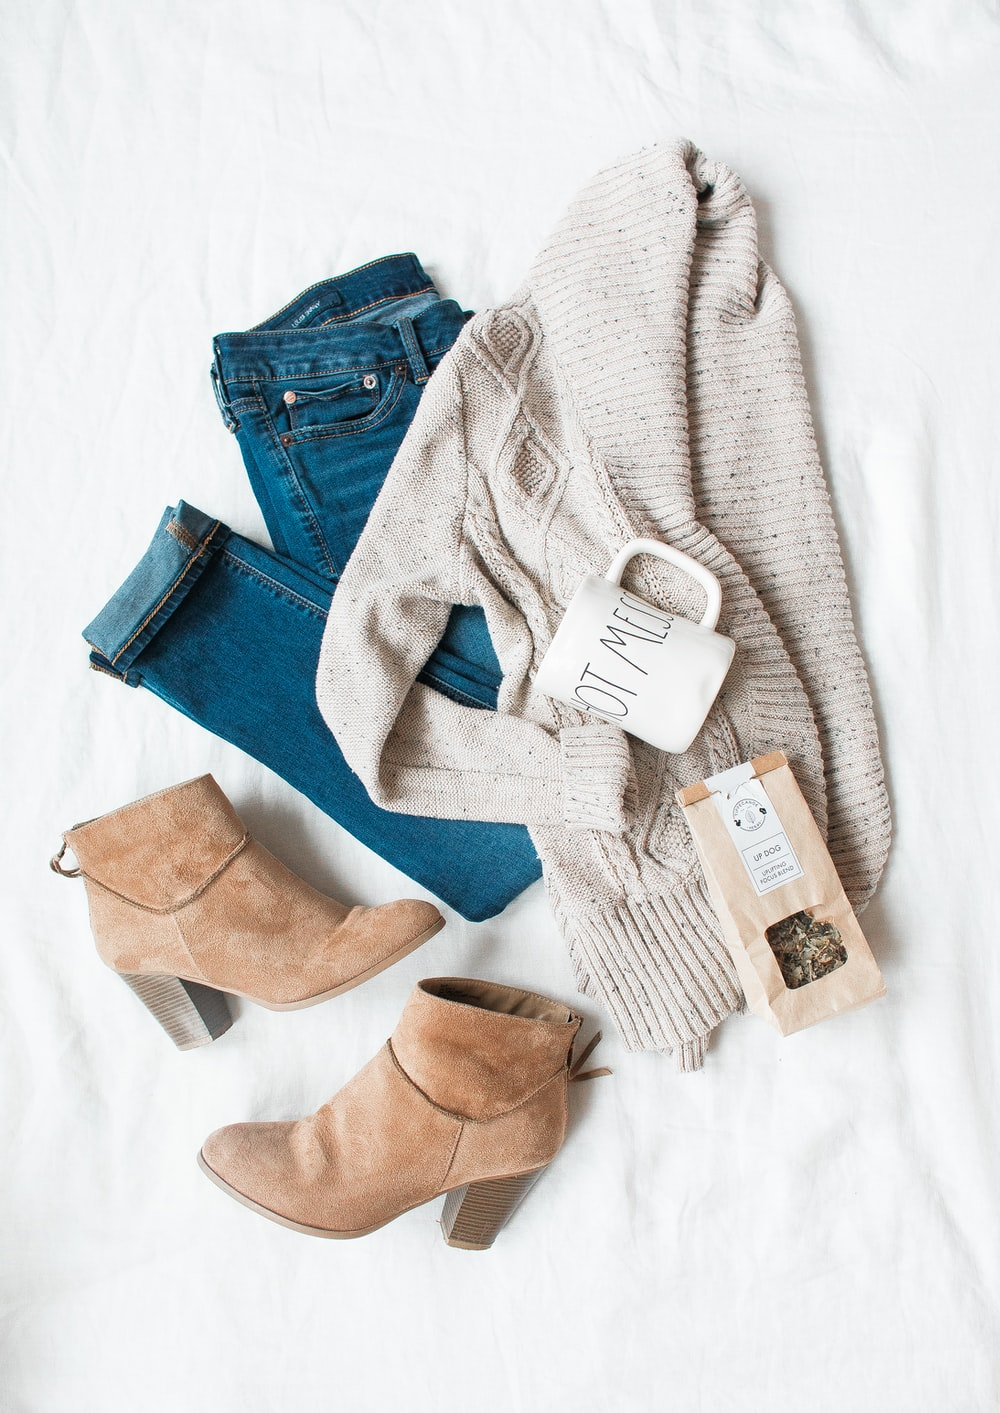 gray cardigan, blue jeans, and pair of brown chunky heeled shoes